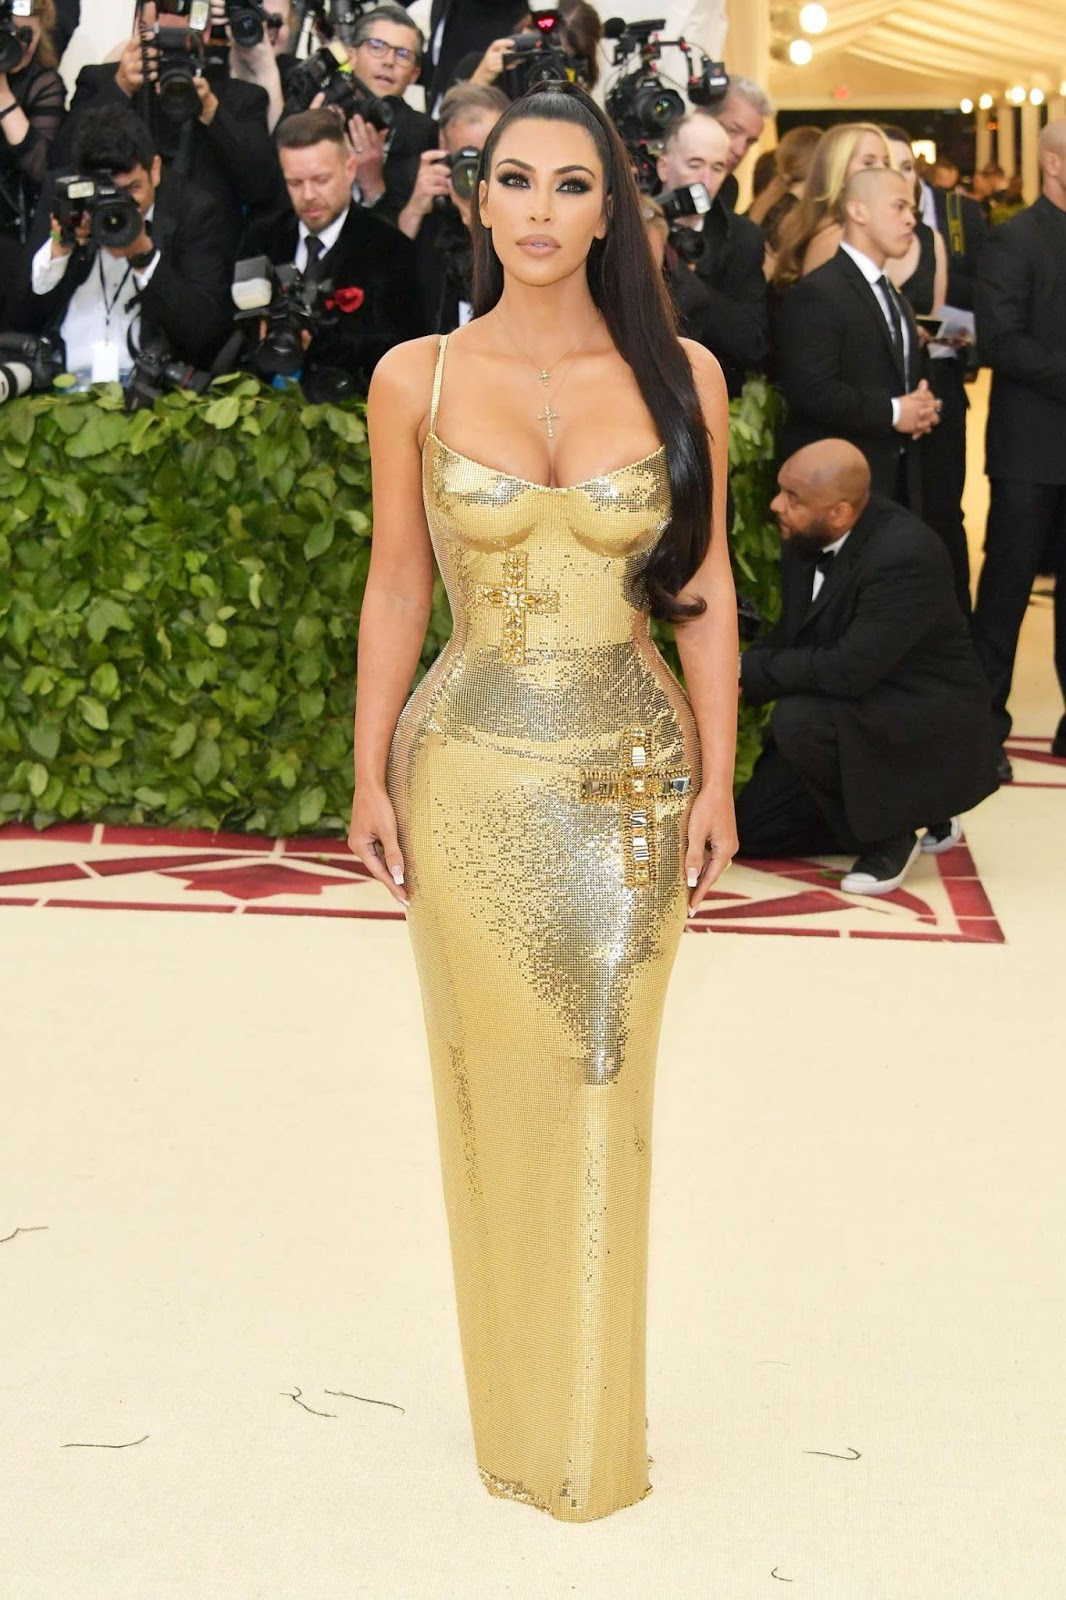 Kim Kardashian is a busty golden goddess at the 2018 Met Gala